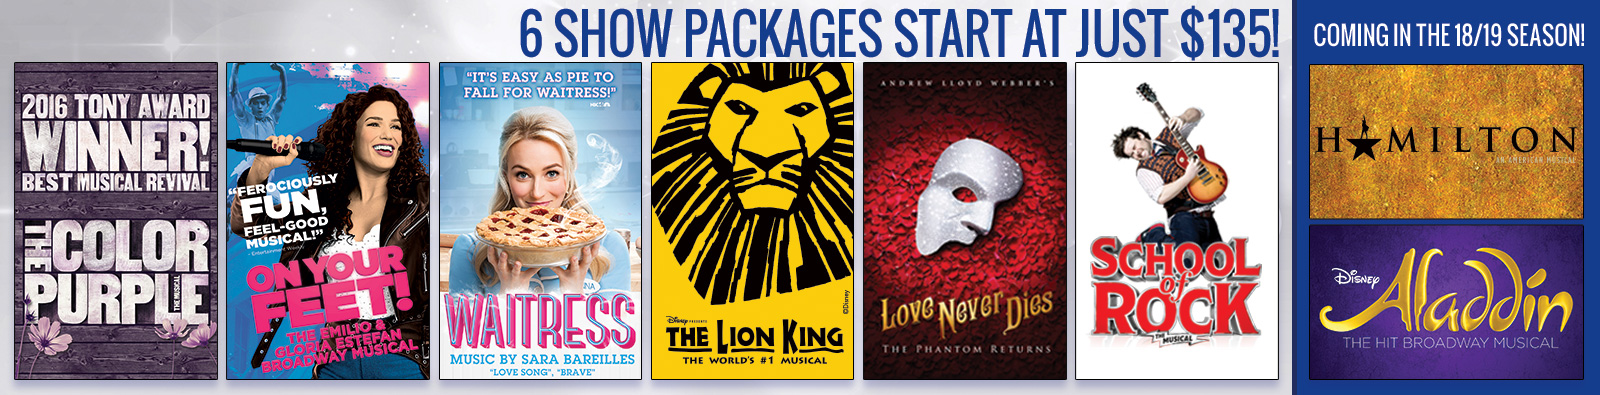 7 Show Packages start at just $150